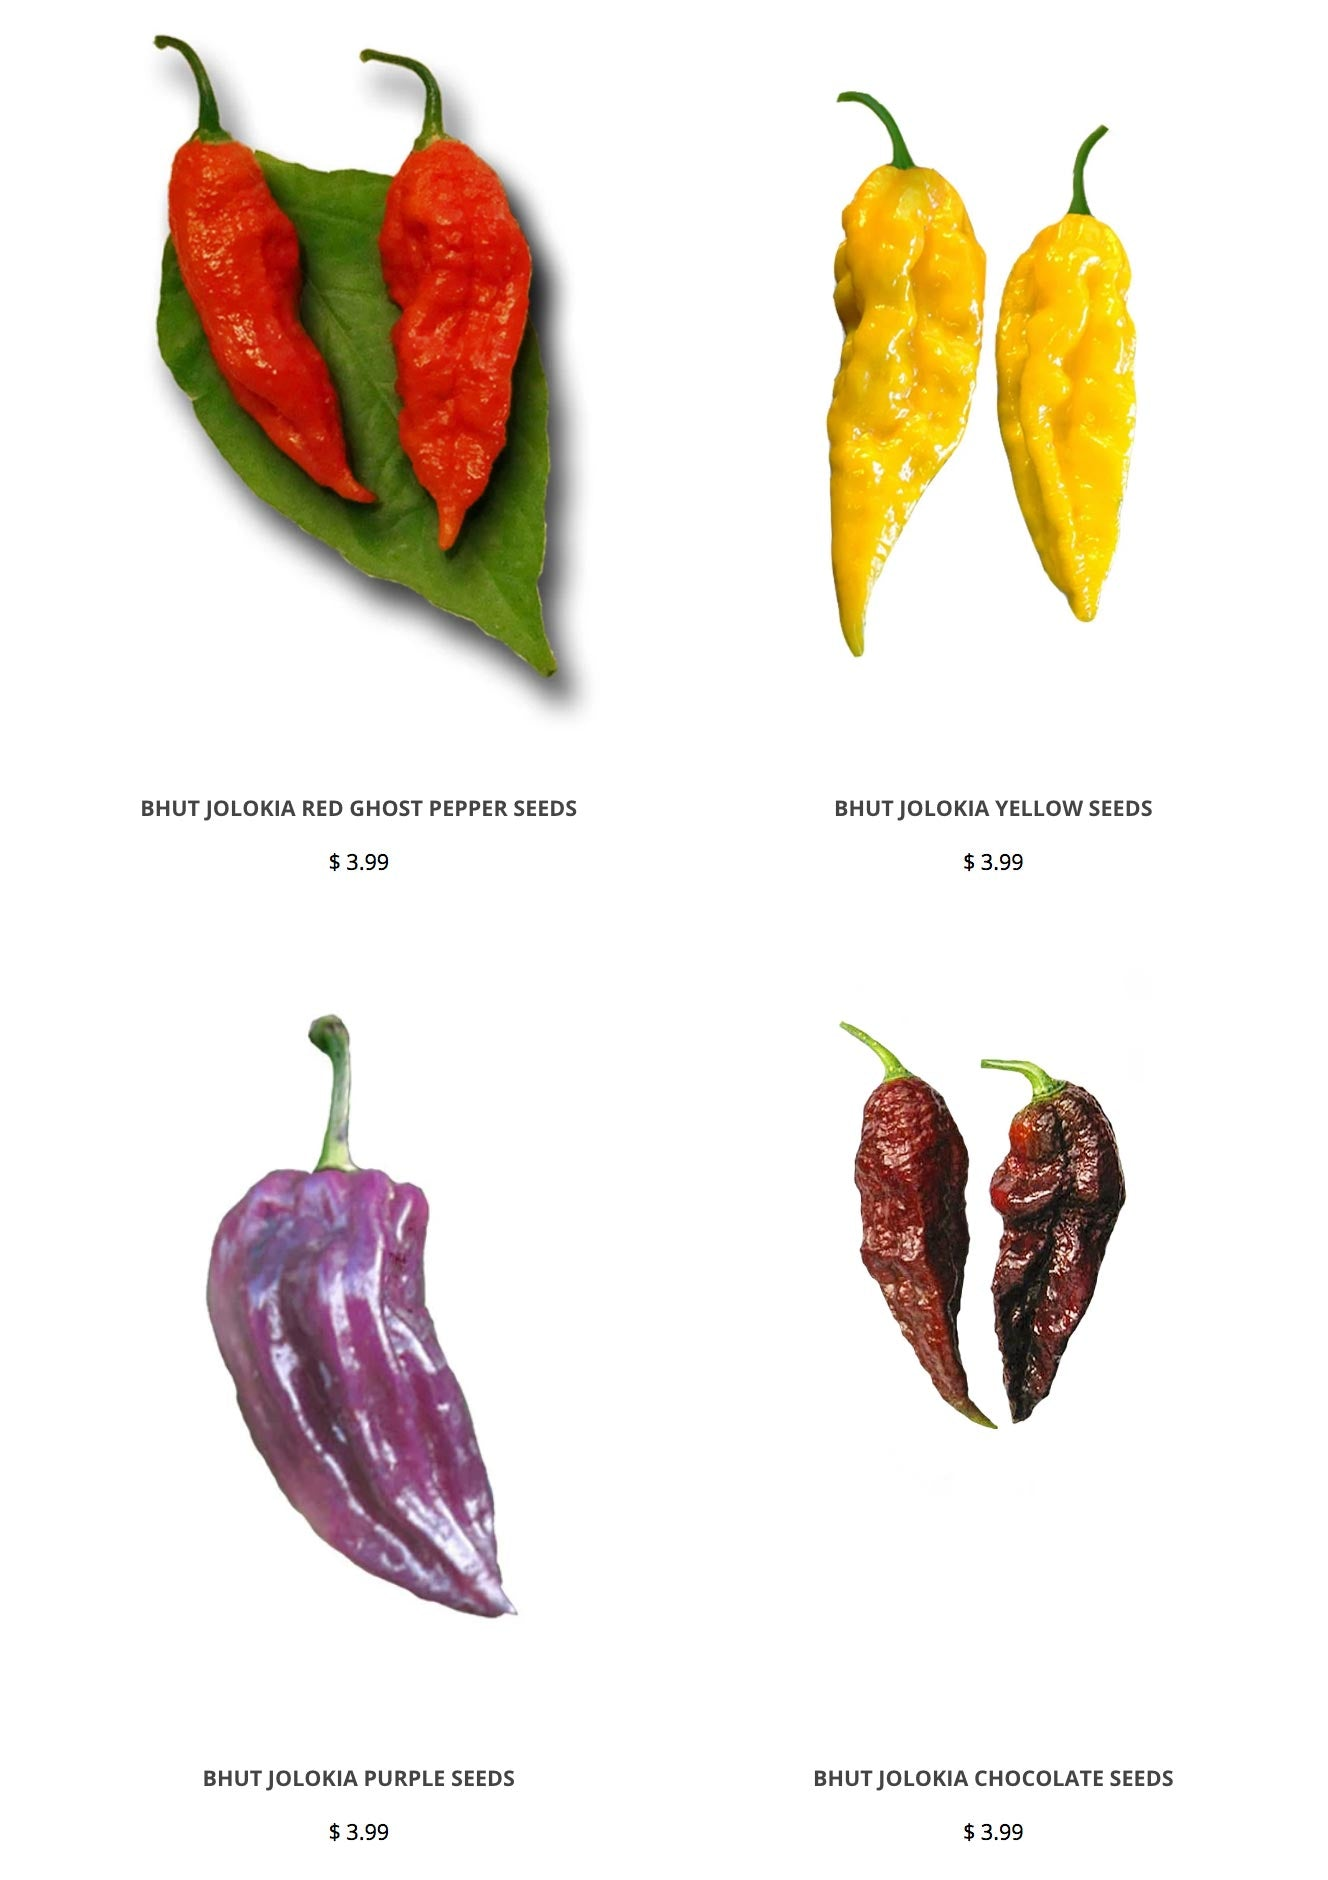 Types of Hot Peppers: Ghost Pepper Seeds